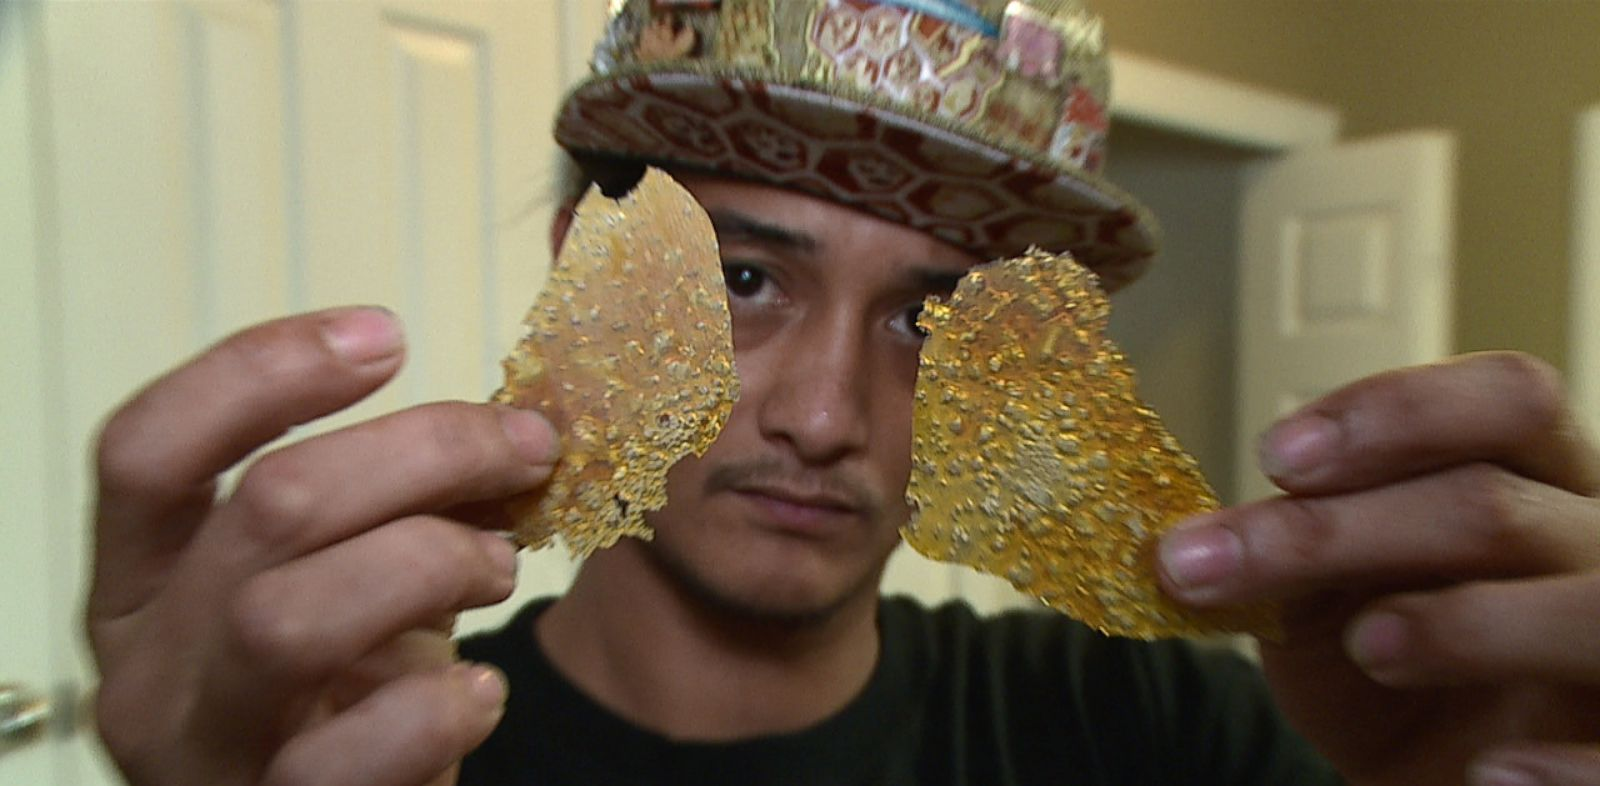 PHOTO: Wax is a drug more powerful than marijuana and is legal in Colorado.